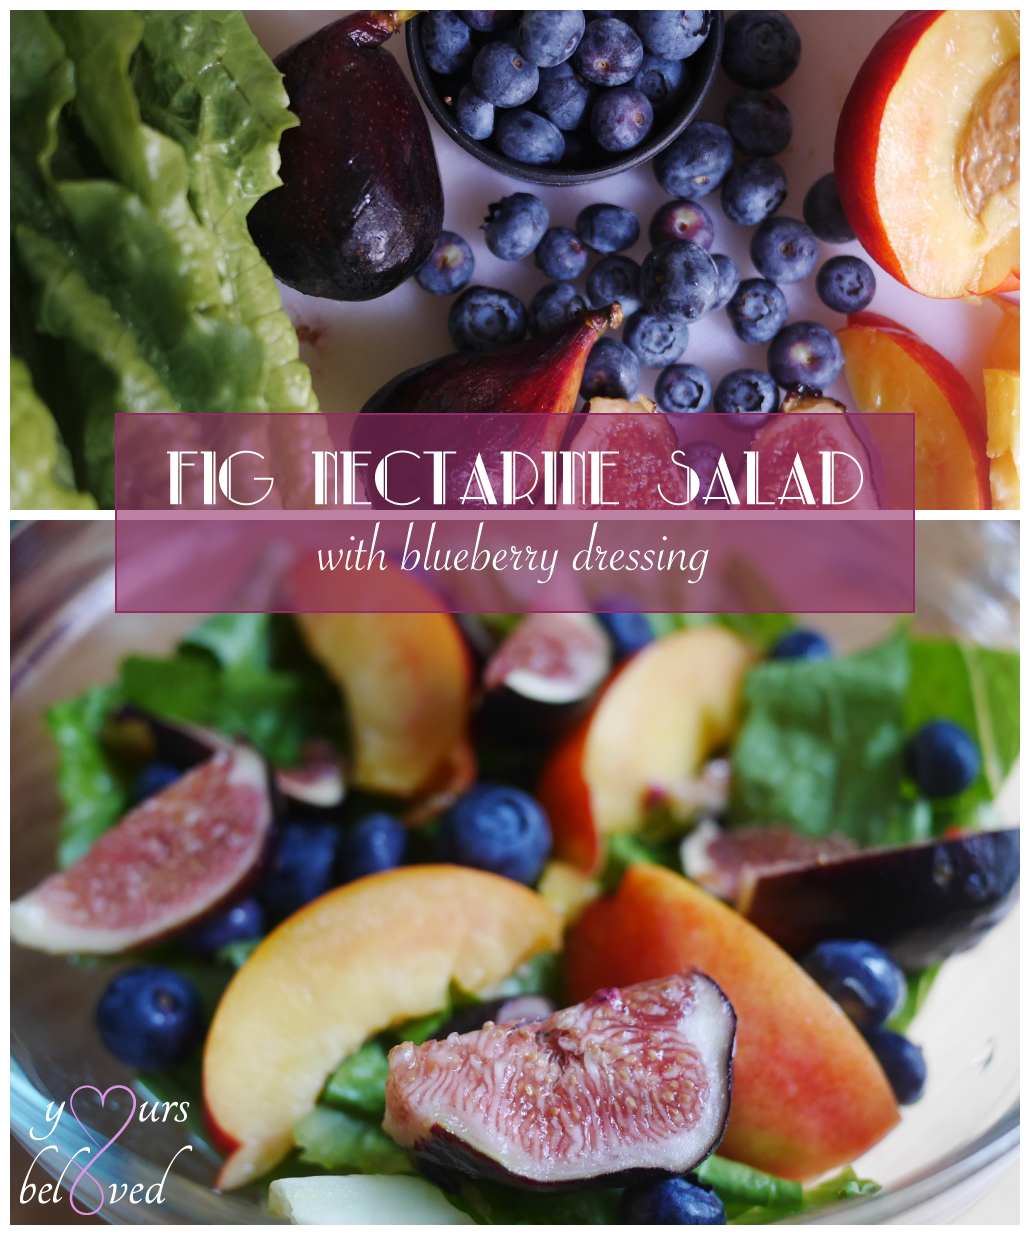 Day 25: Fig Nectarine Salad with Blueberry Dressing